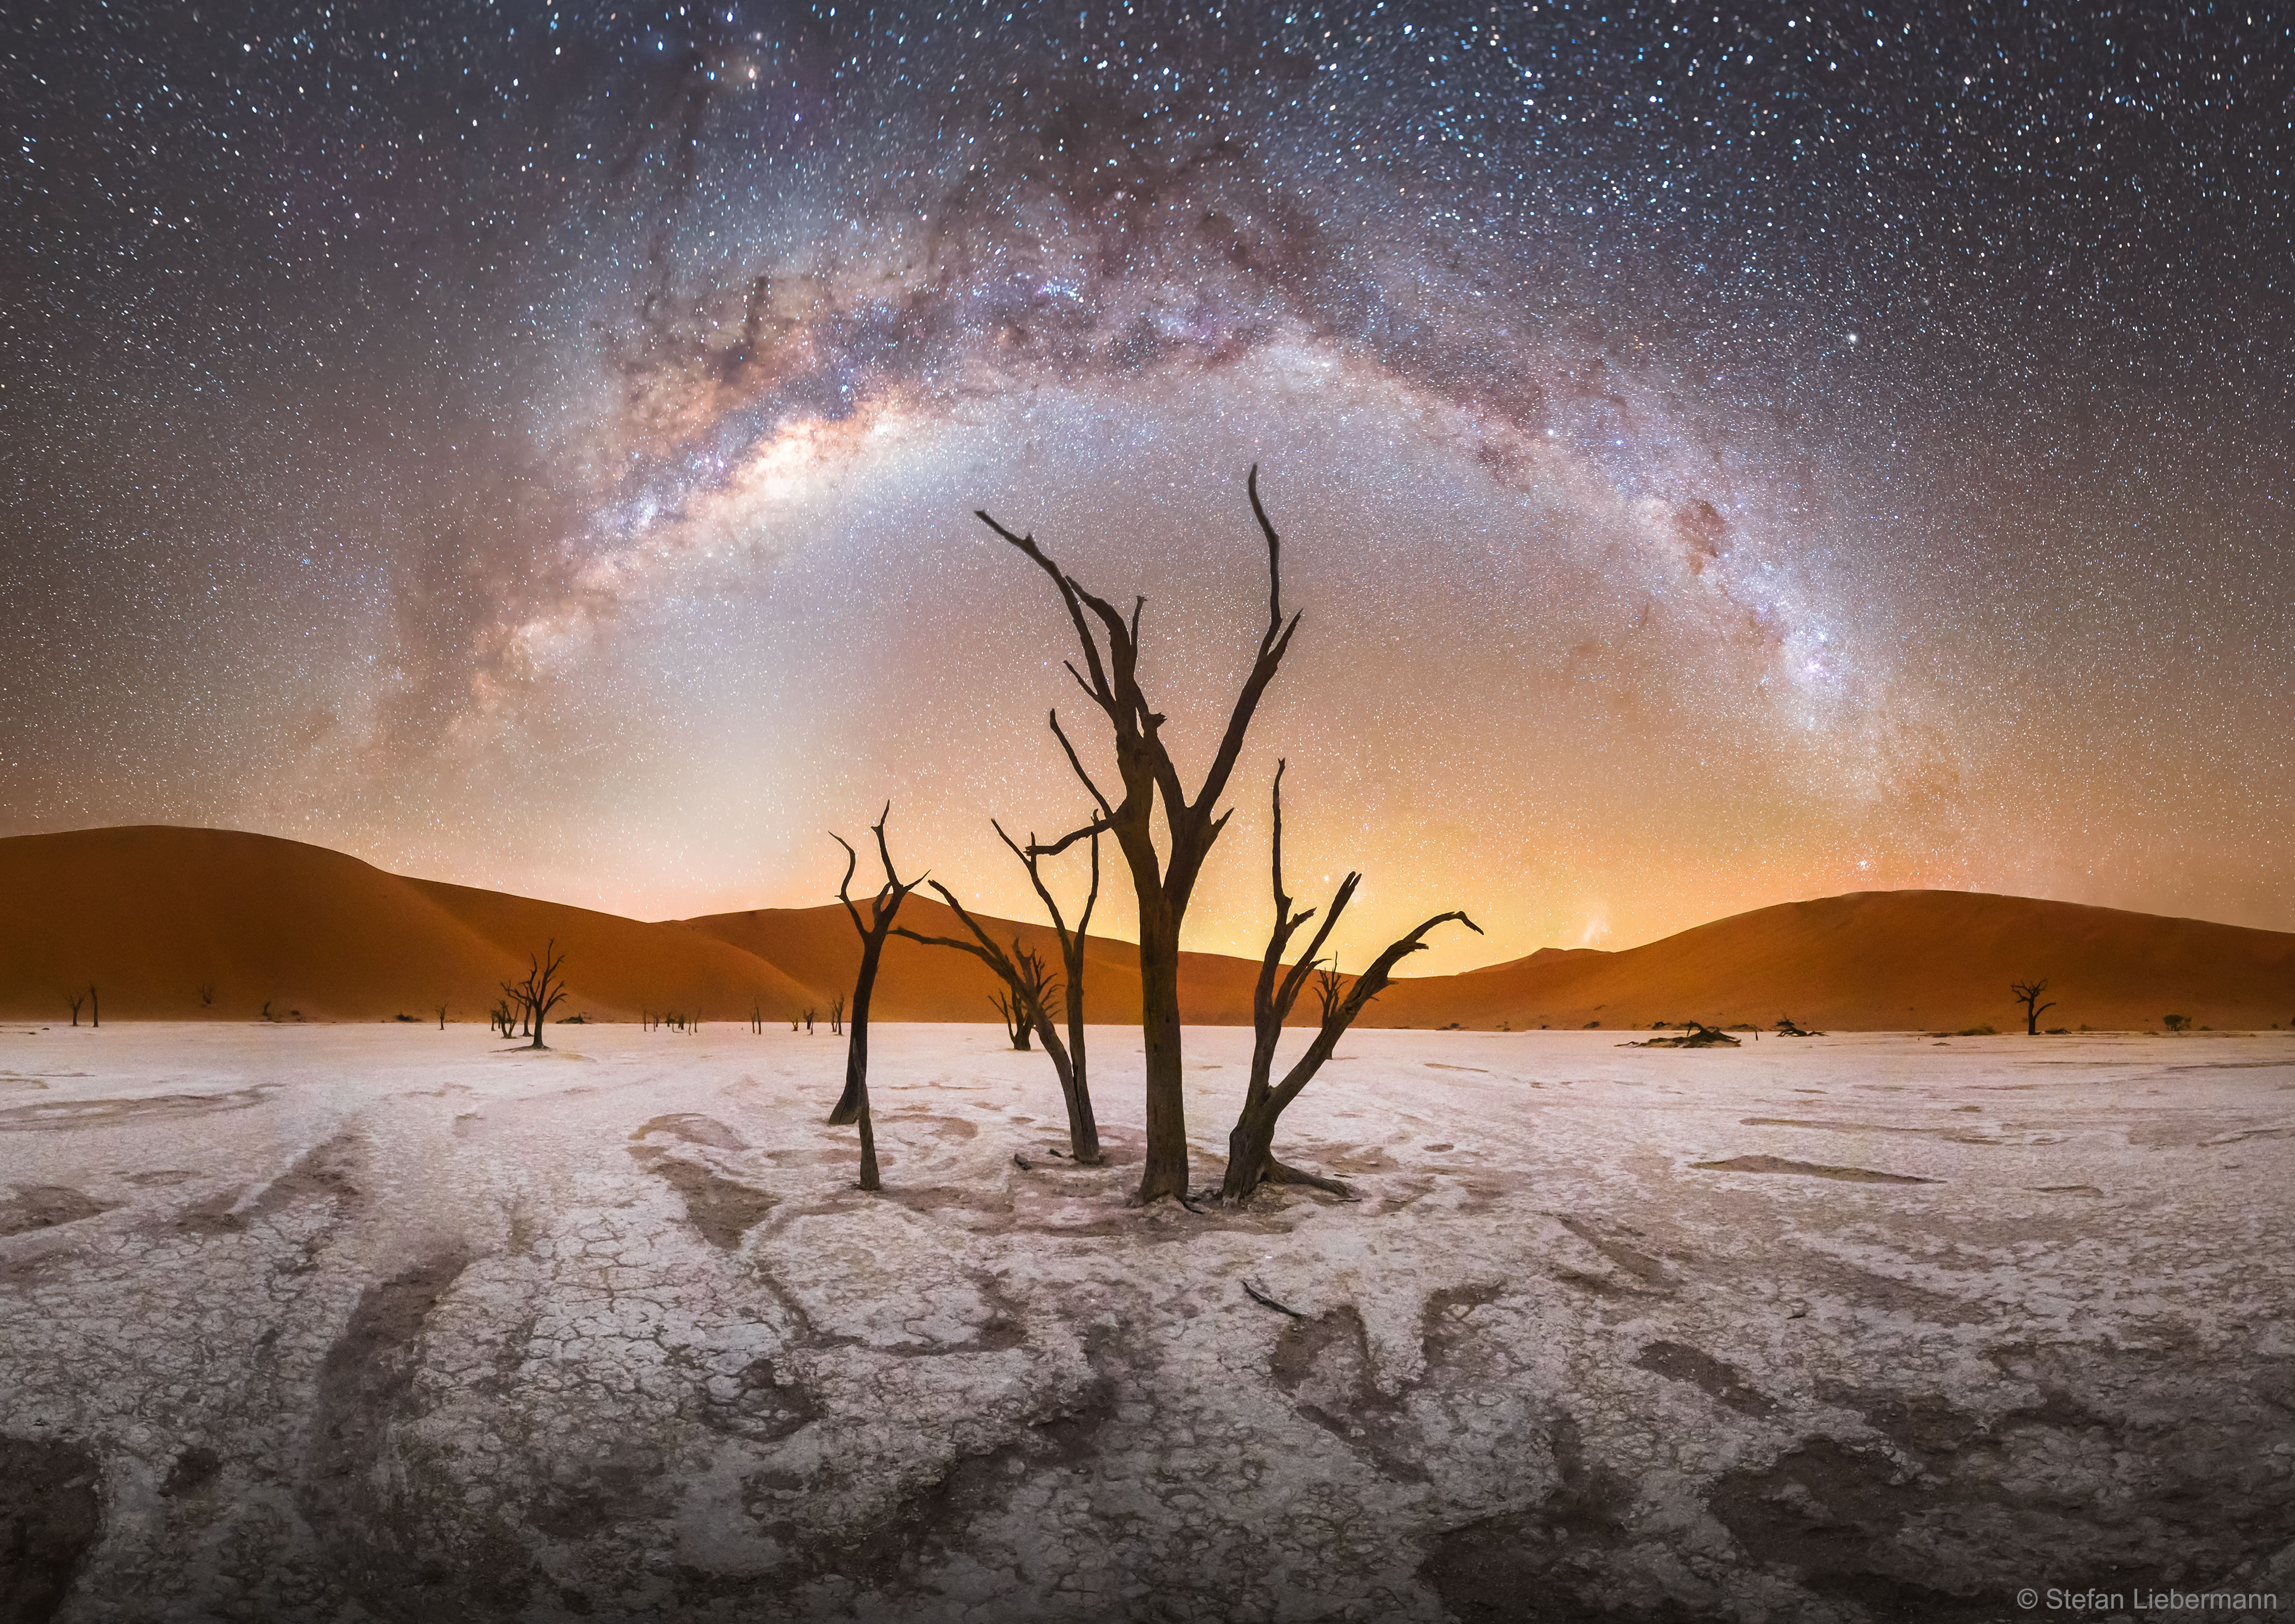 APOD: 2018 April 18 - Milky Way over Deadvlei in Namibia